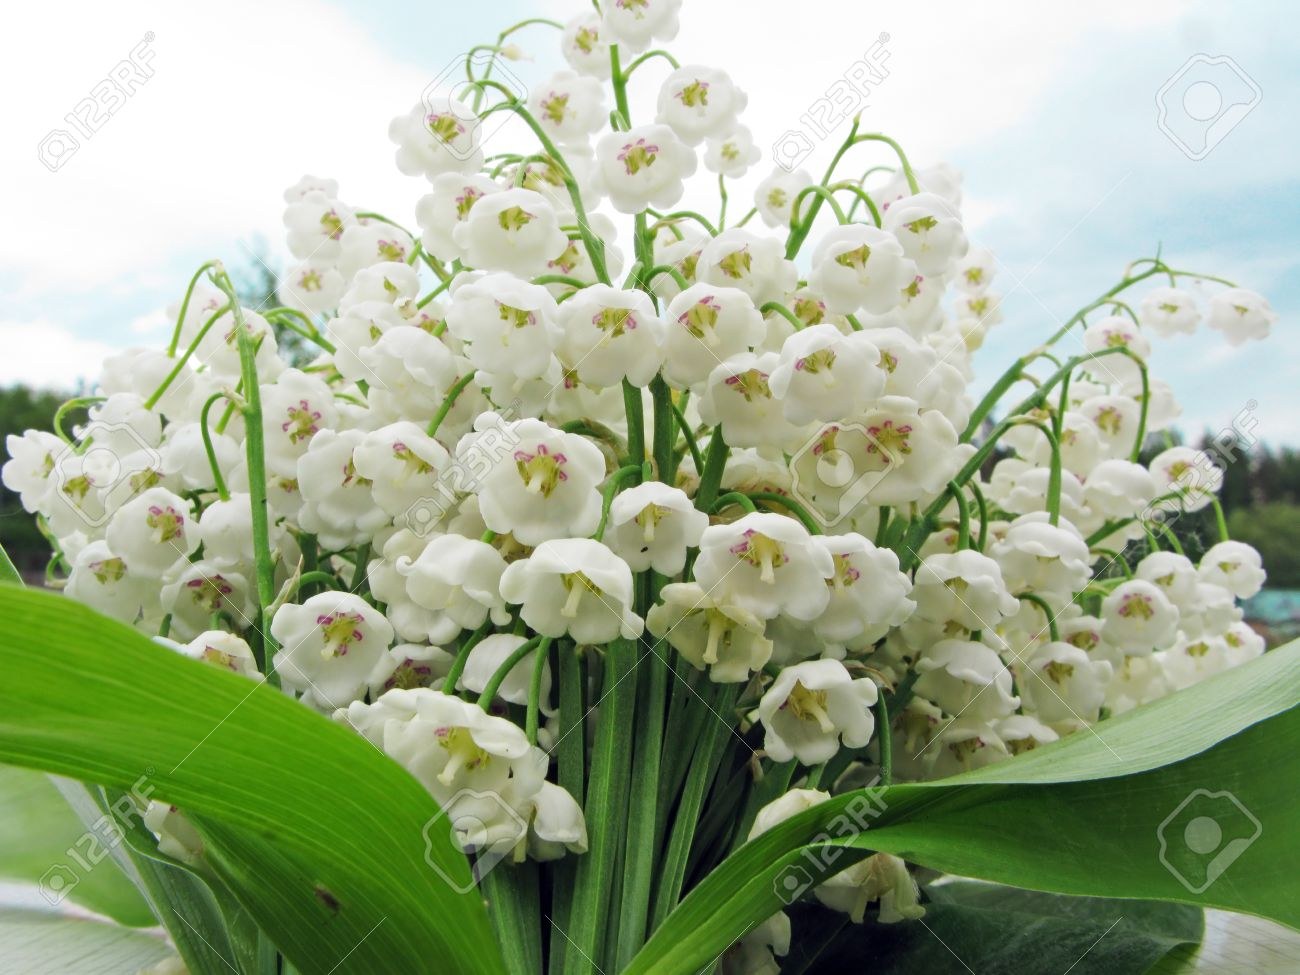 White lily of the valley flowers bouquet floral background stock stock photo white lily of the valley flowers bouquet floral background izmirmasajfo